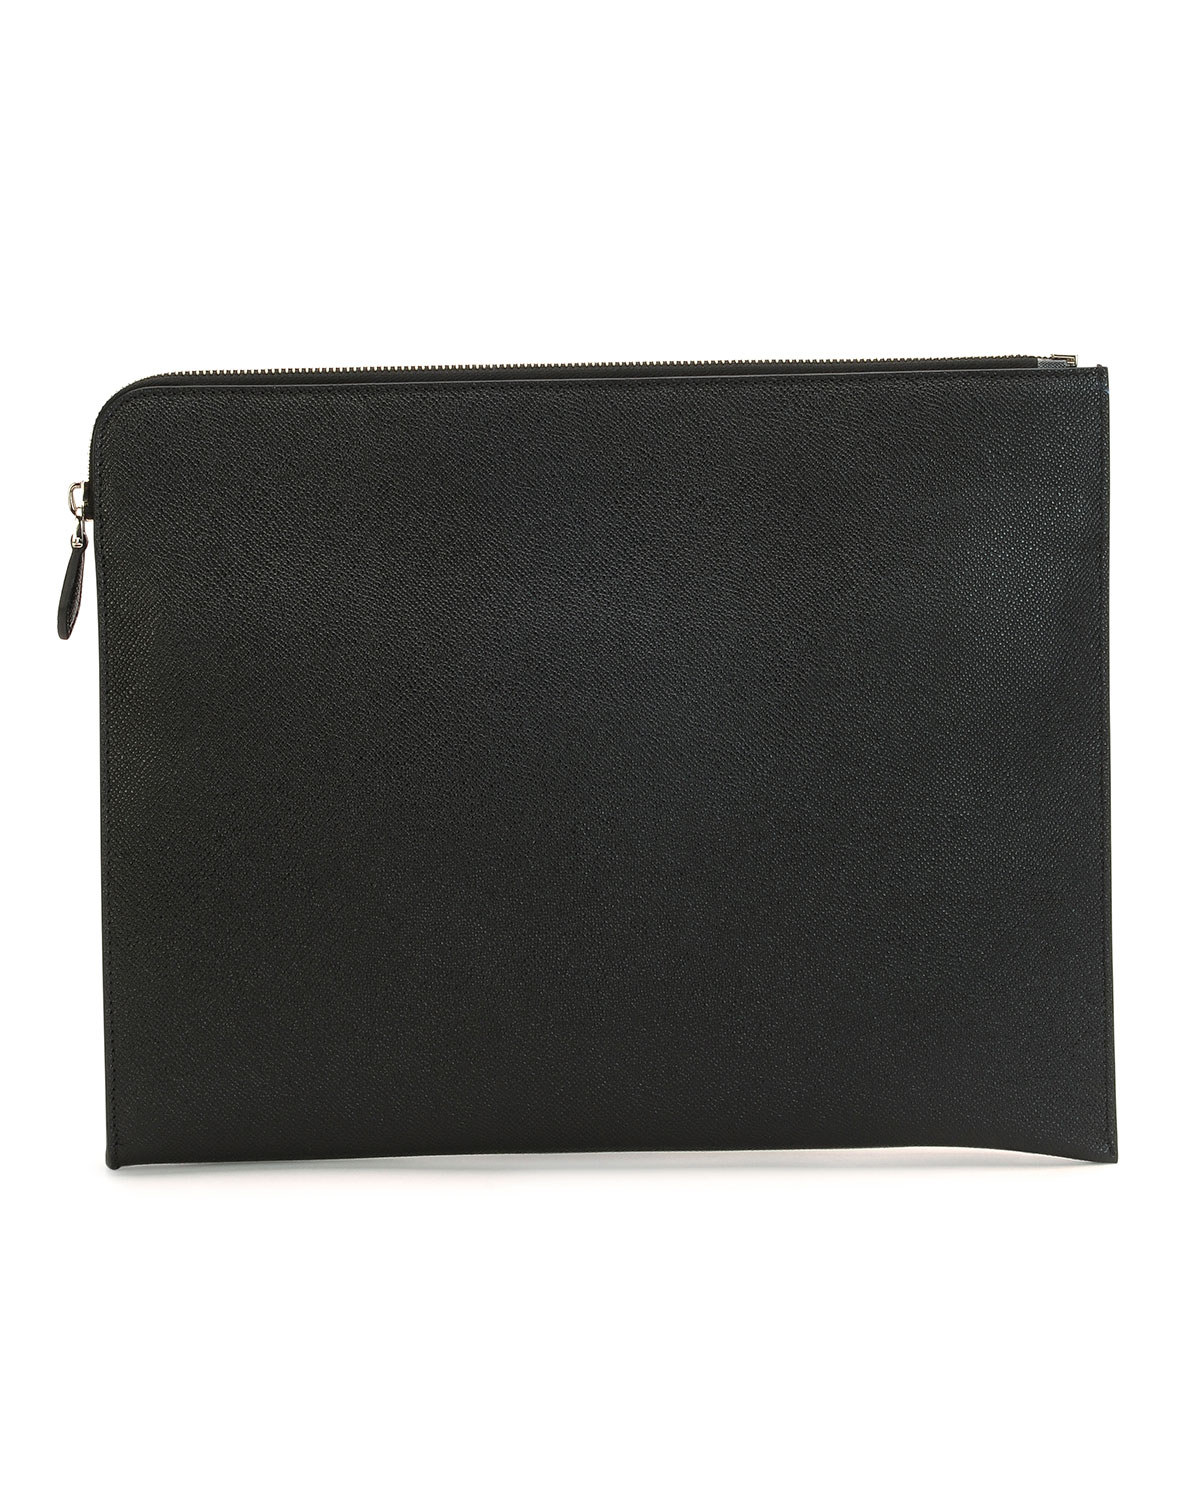 givenchy leather document holder in black for men lyst With black leather document holder